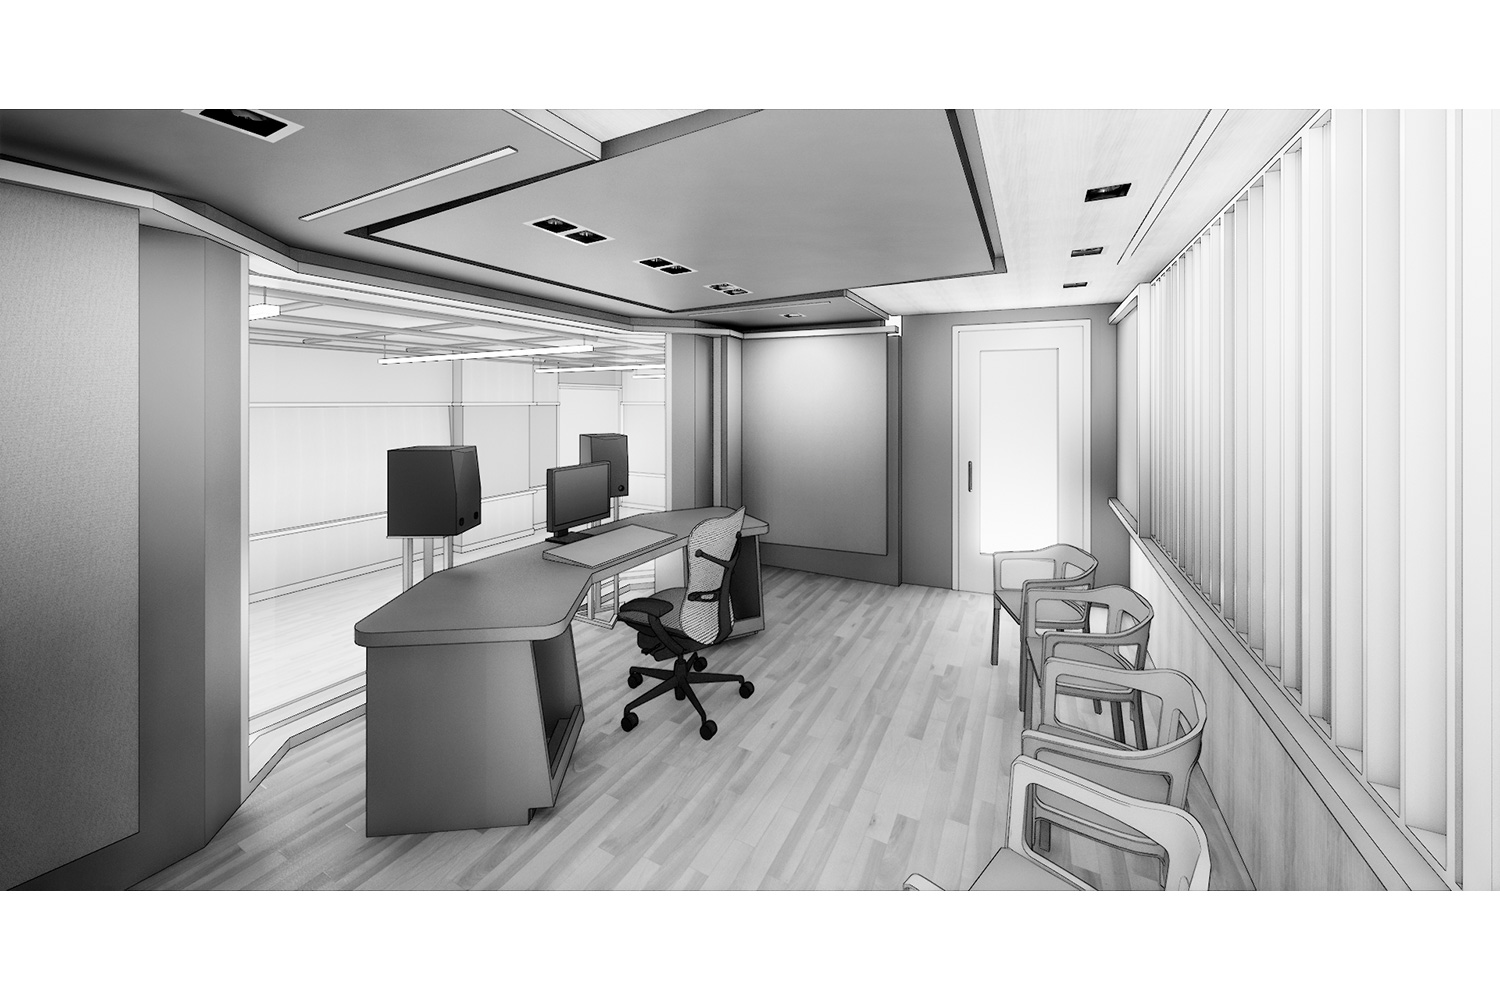 WSDG was engaged to design three key elements for th NYU Jay Street sustainable technology Center. Immersive audio lab, garage media and motion capture lab. Render Control Room.